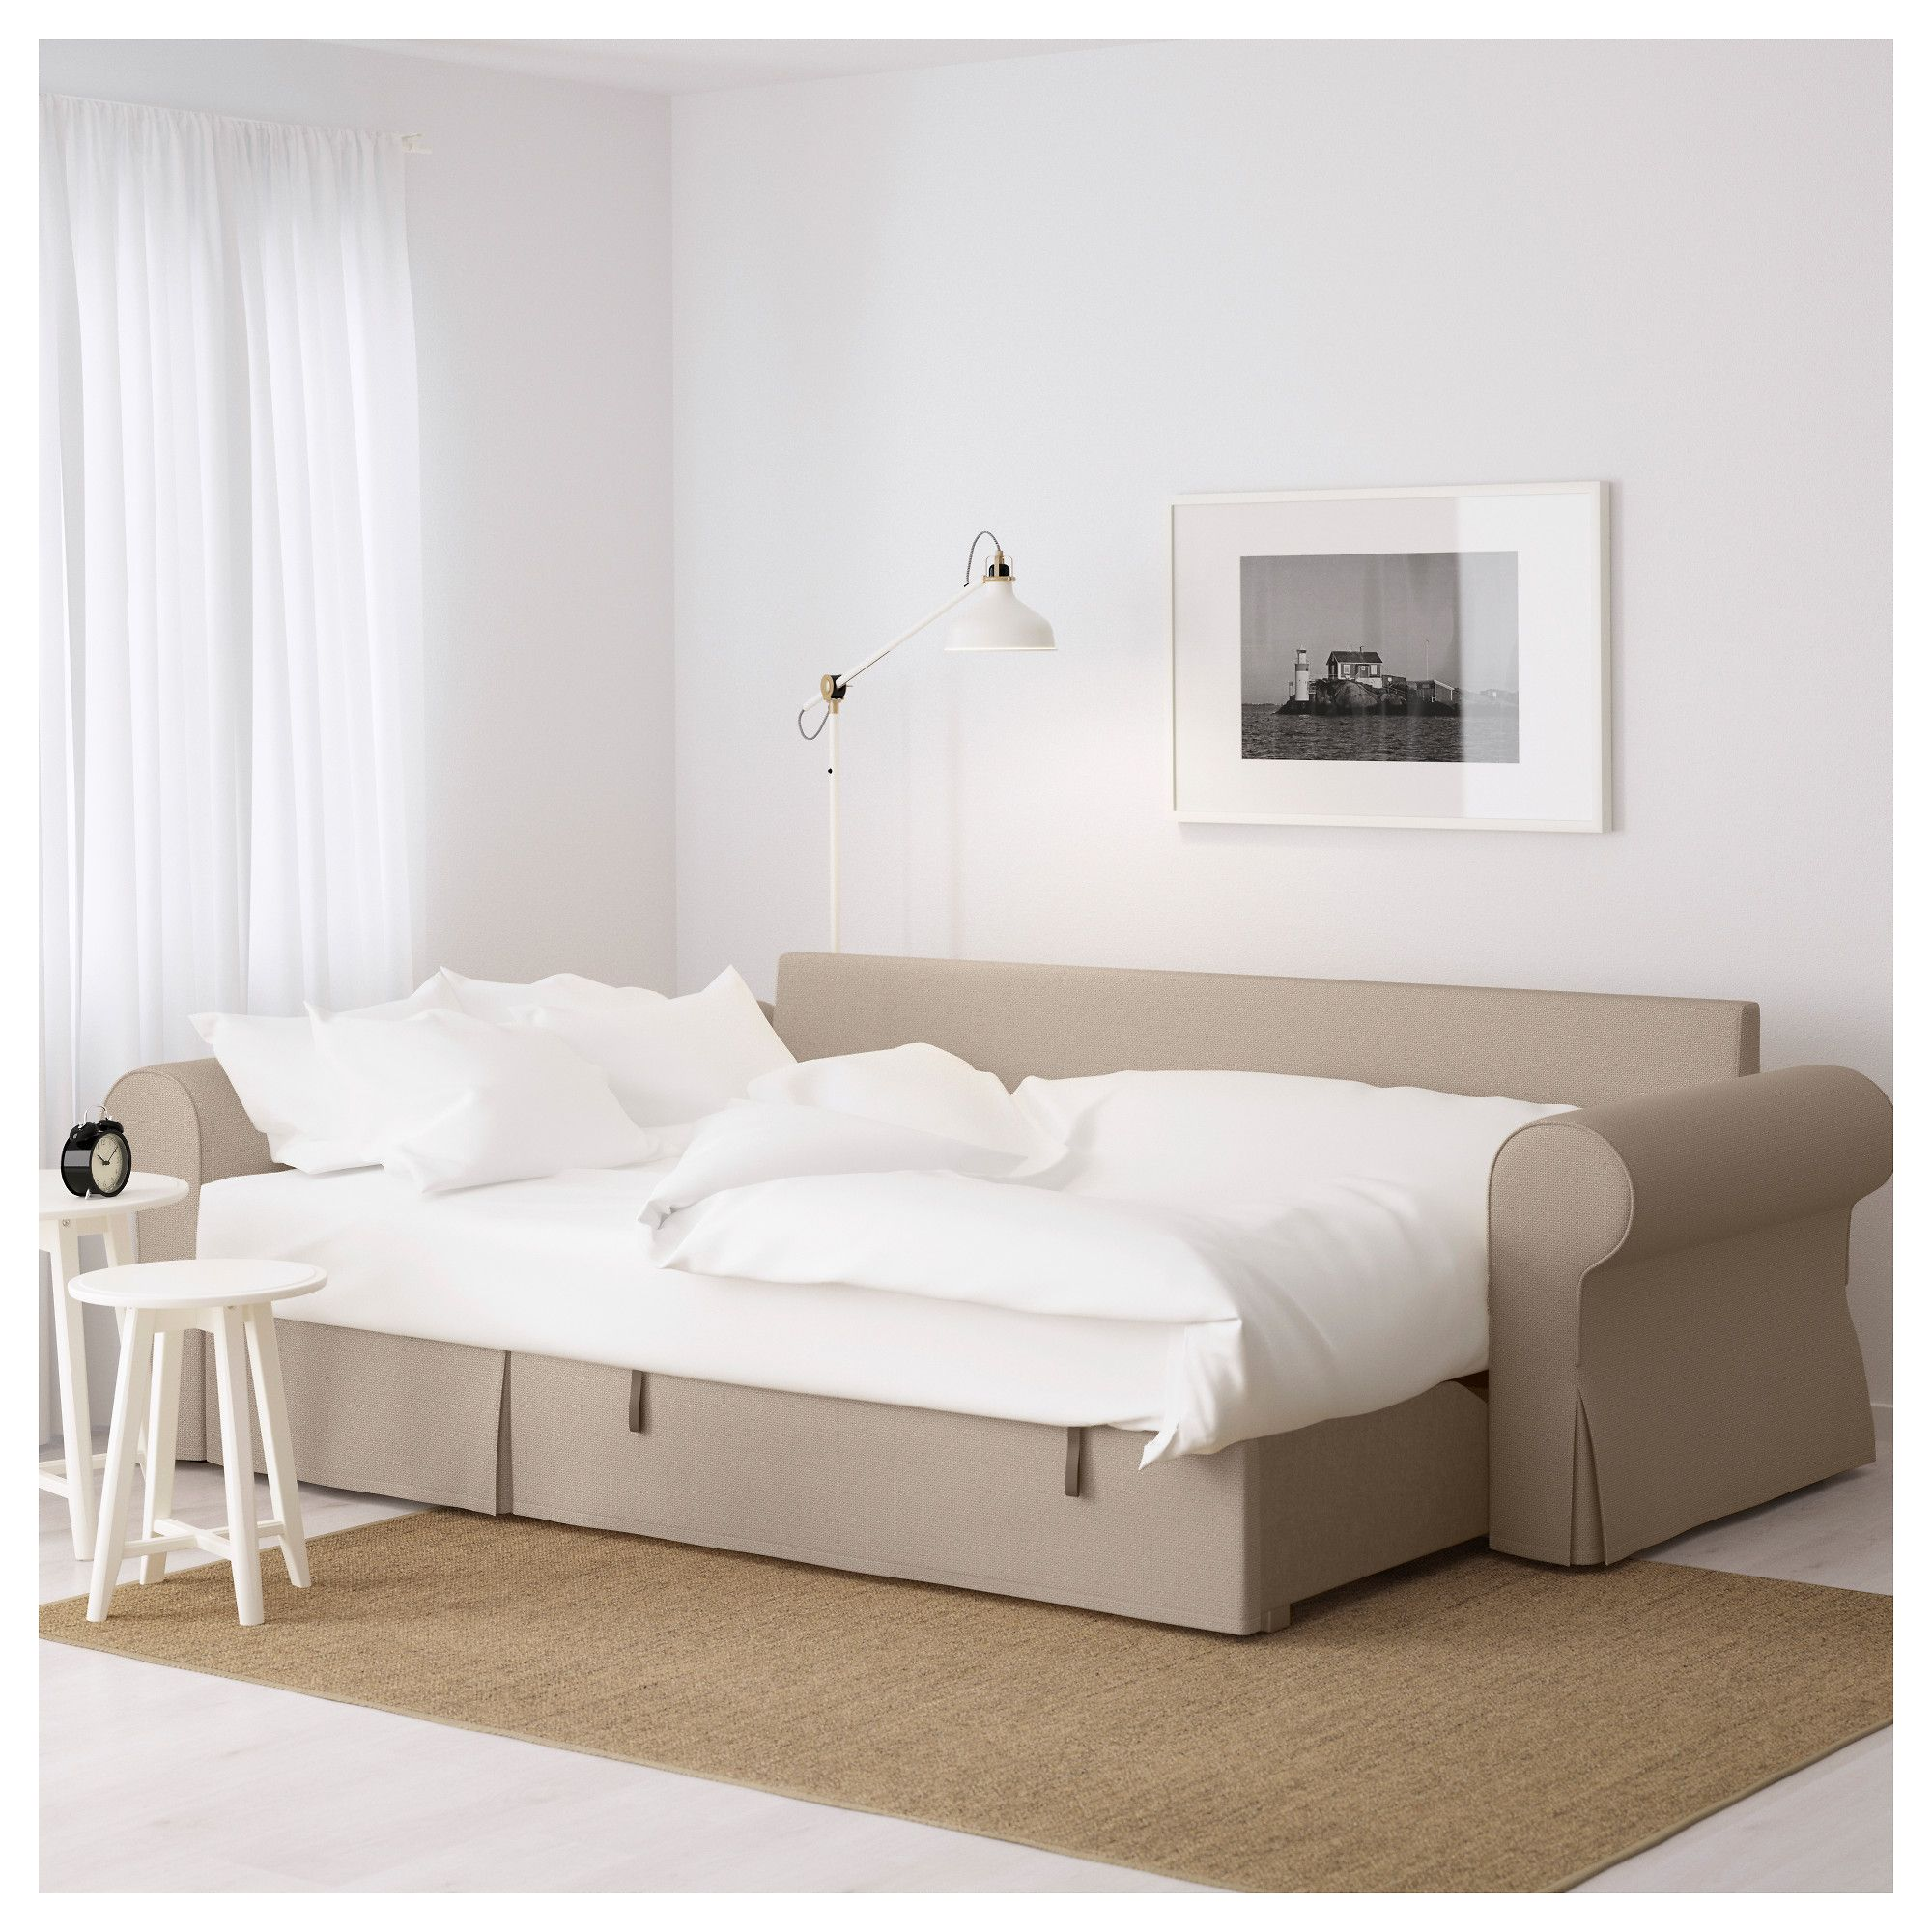 Backabro sofa bed with chaise longue hylte beige beige for Bed chaise longue